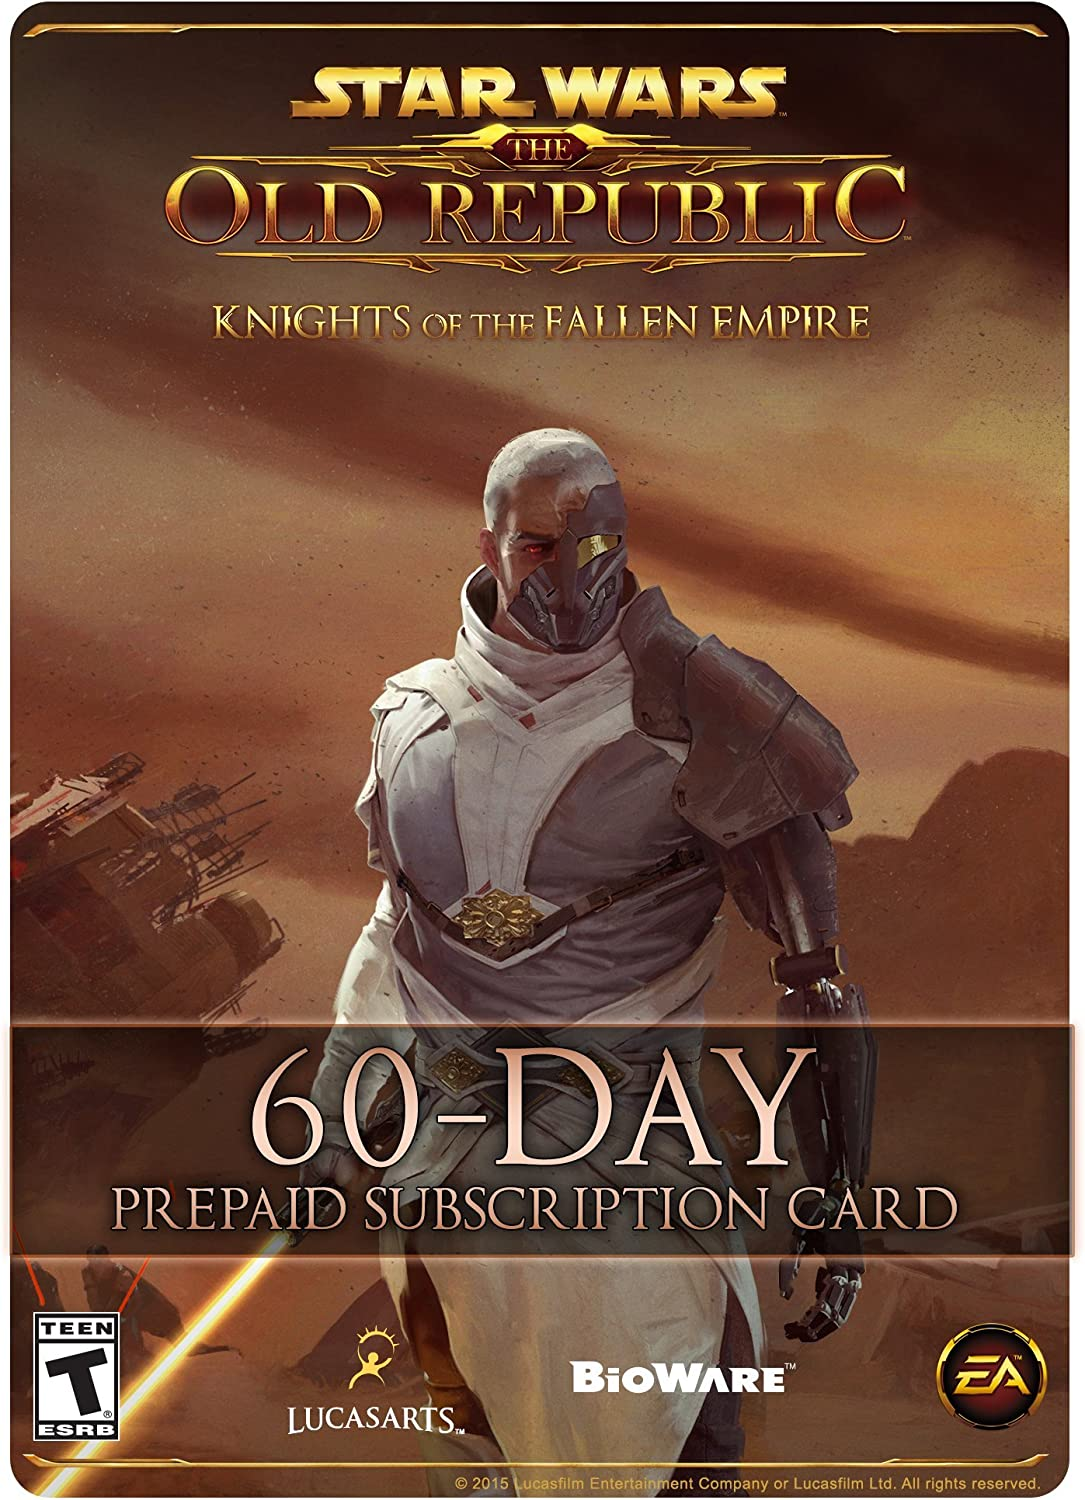 Amazon com: Star Wars: The Old Republic - 60 Day Prepaid